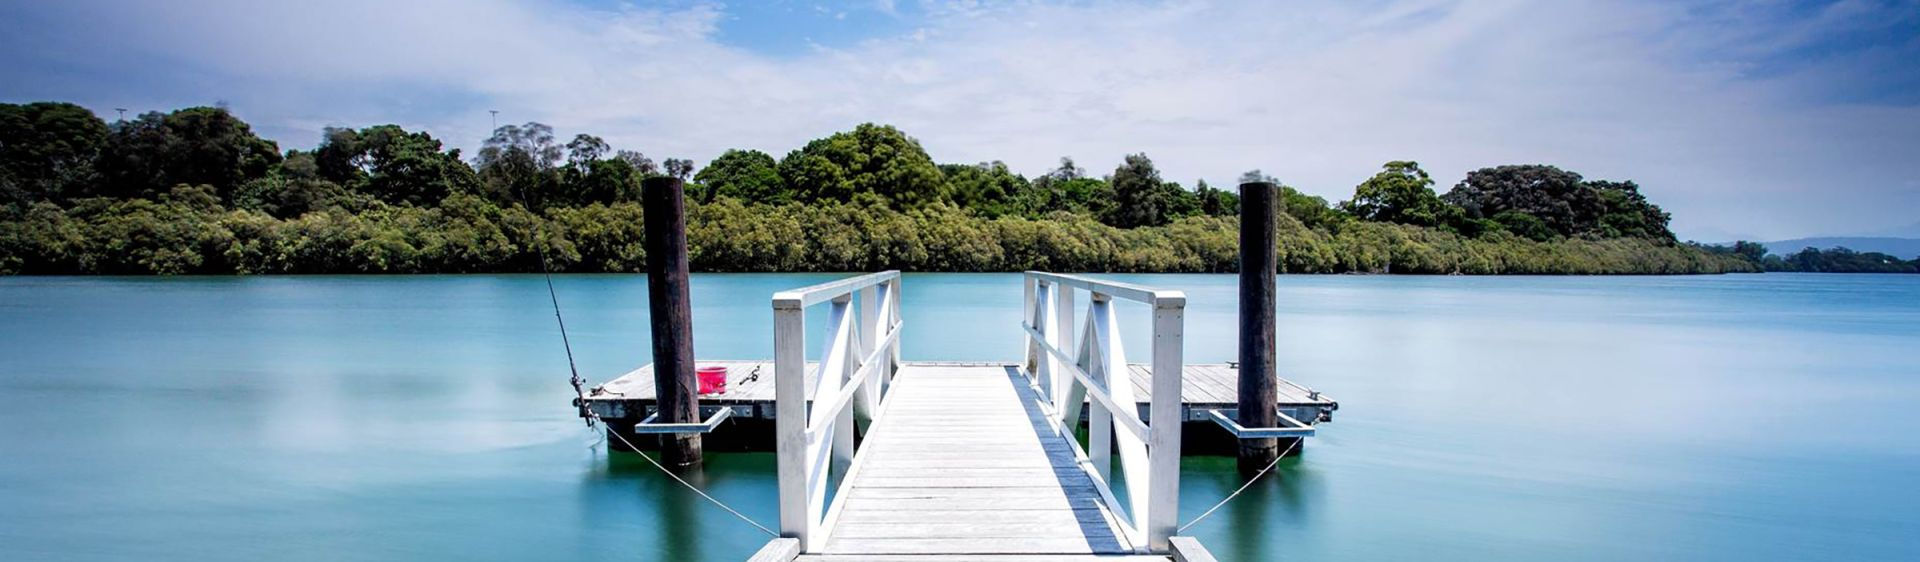 Jetty on the Bellinger River estuary in Urunga, near Coffs Harbour